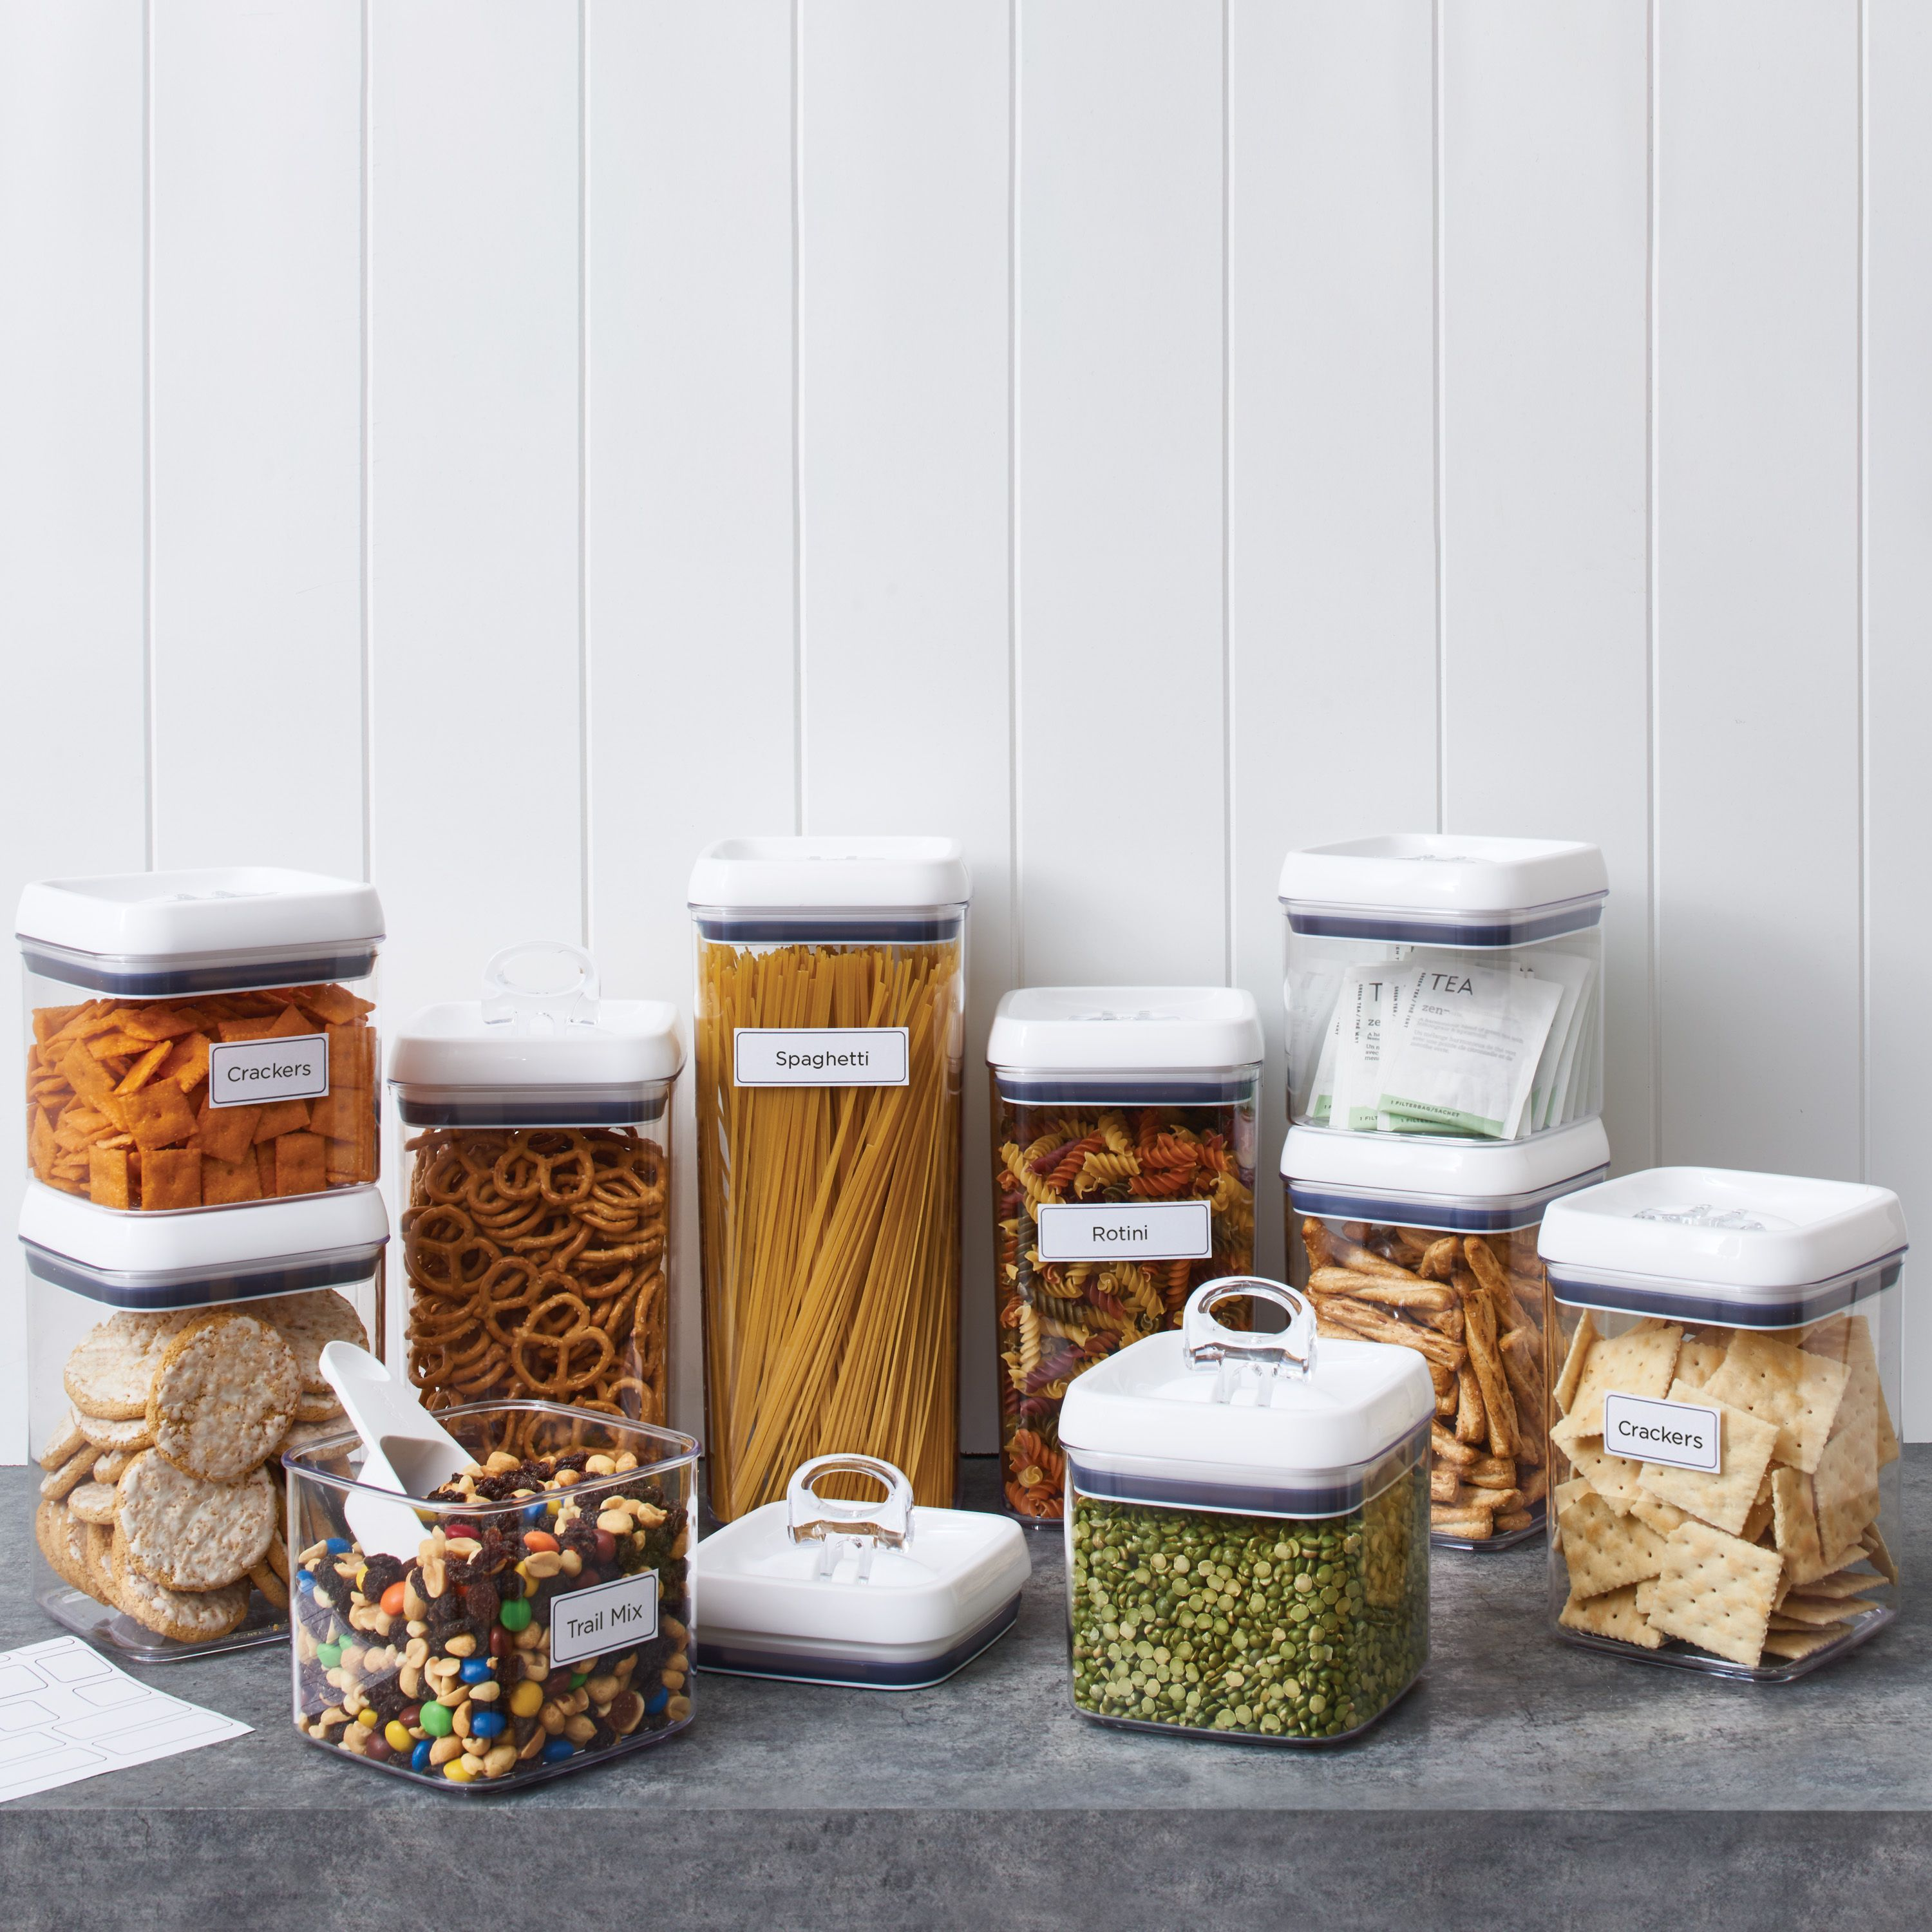 548af013a80ef3eb29f3c56c6d7f2f81 - Better Homes And Gardens Flip Tite Containers 6 Piece